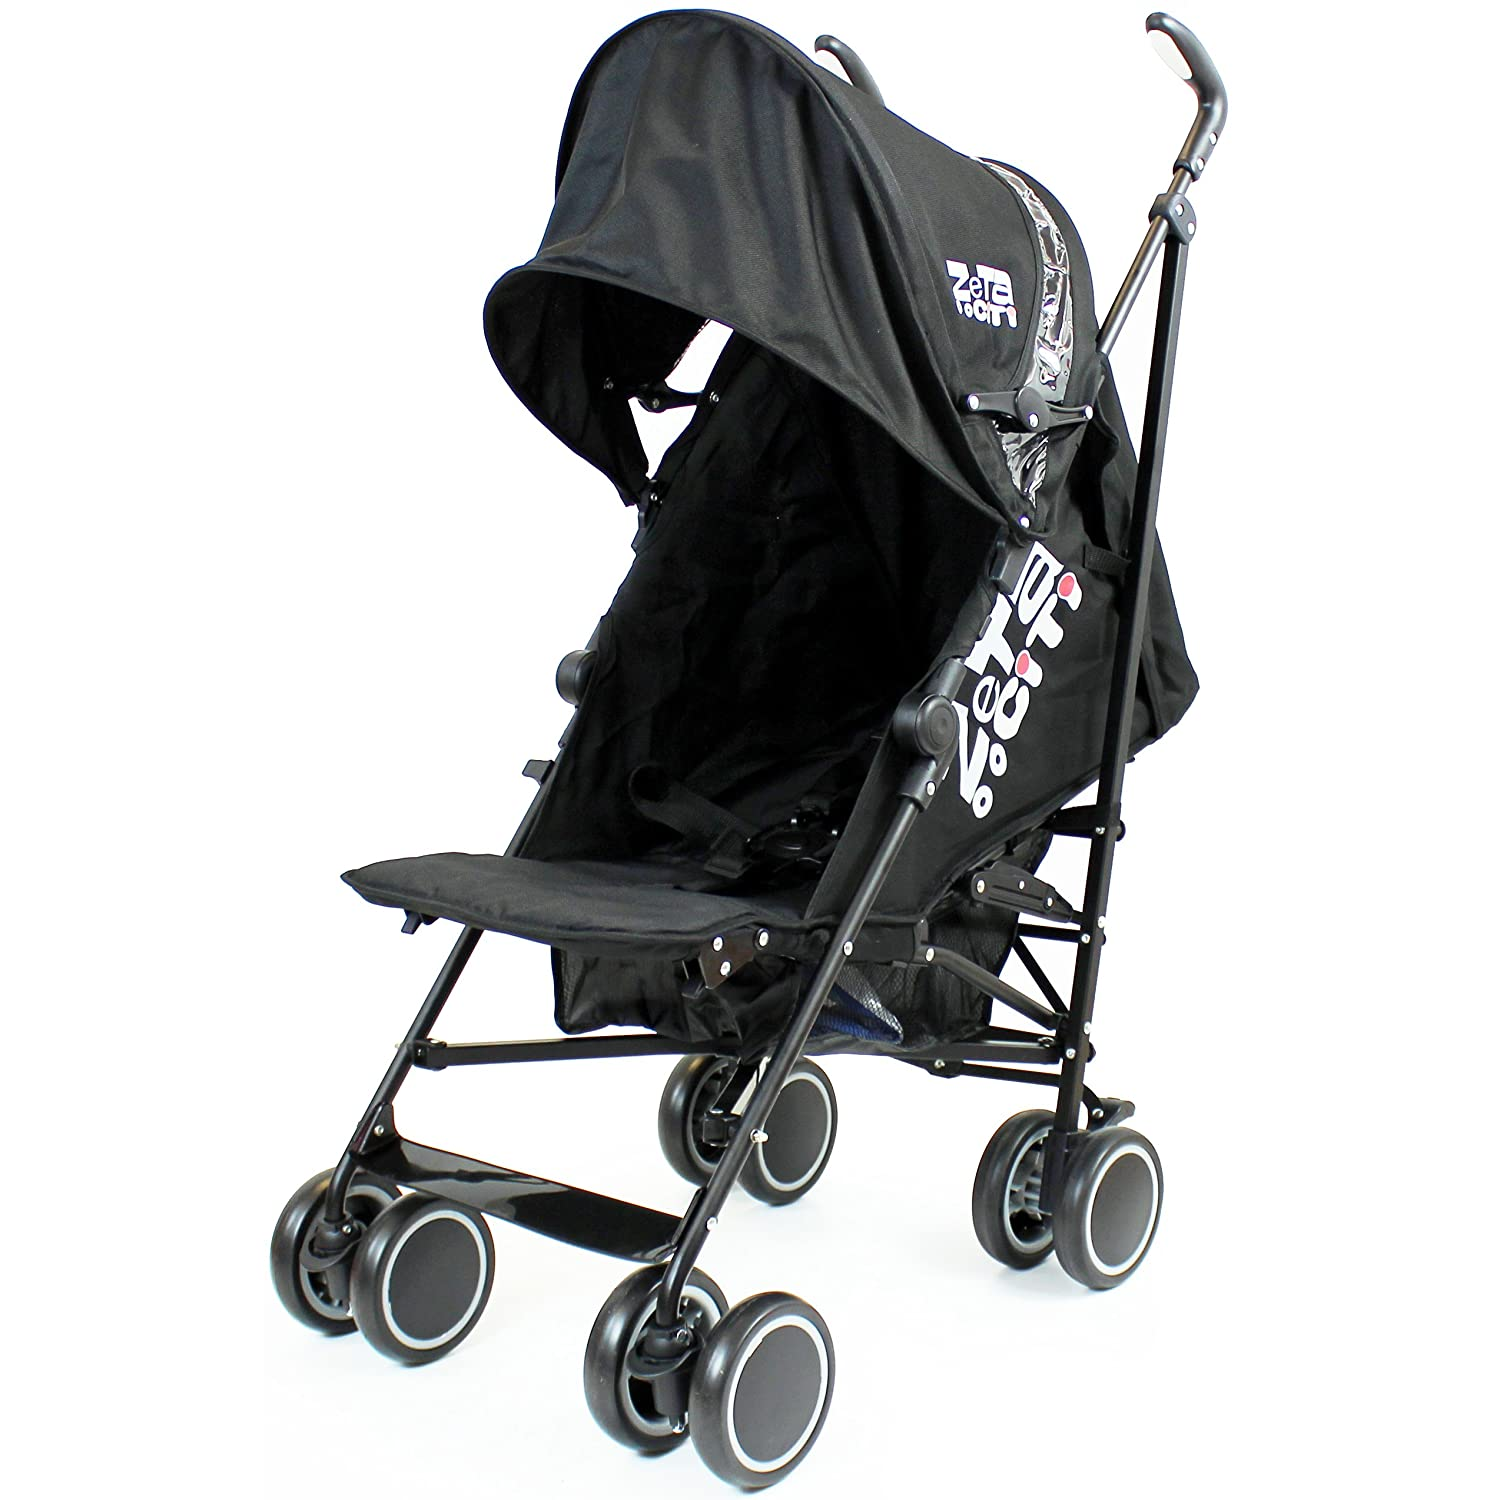 Zeta Citi Stroller Buggy Pushchair - Black